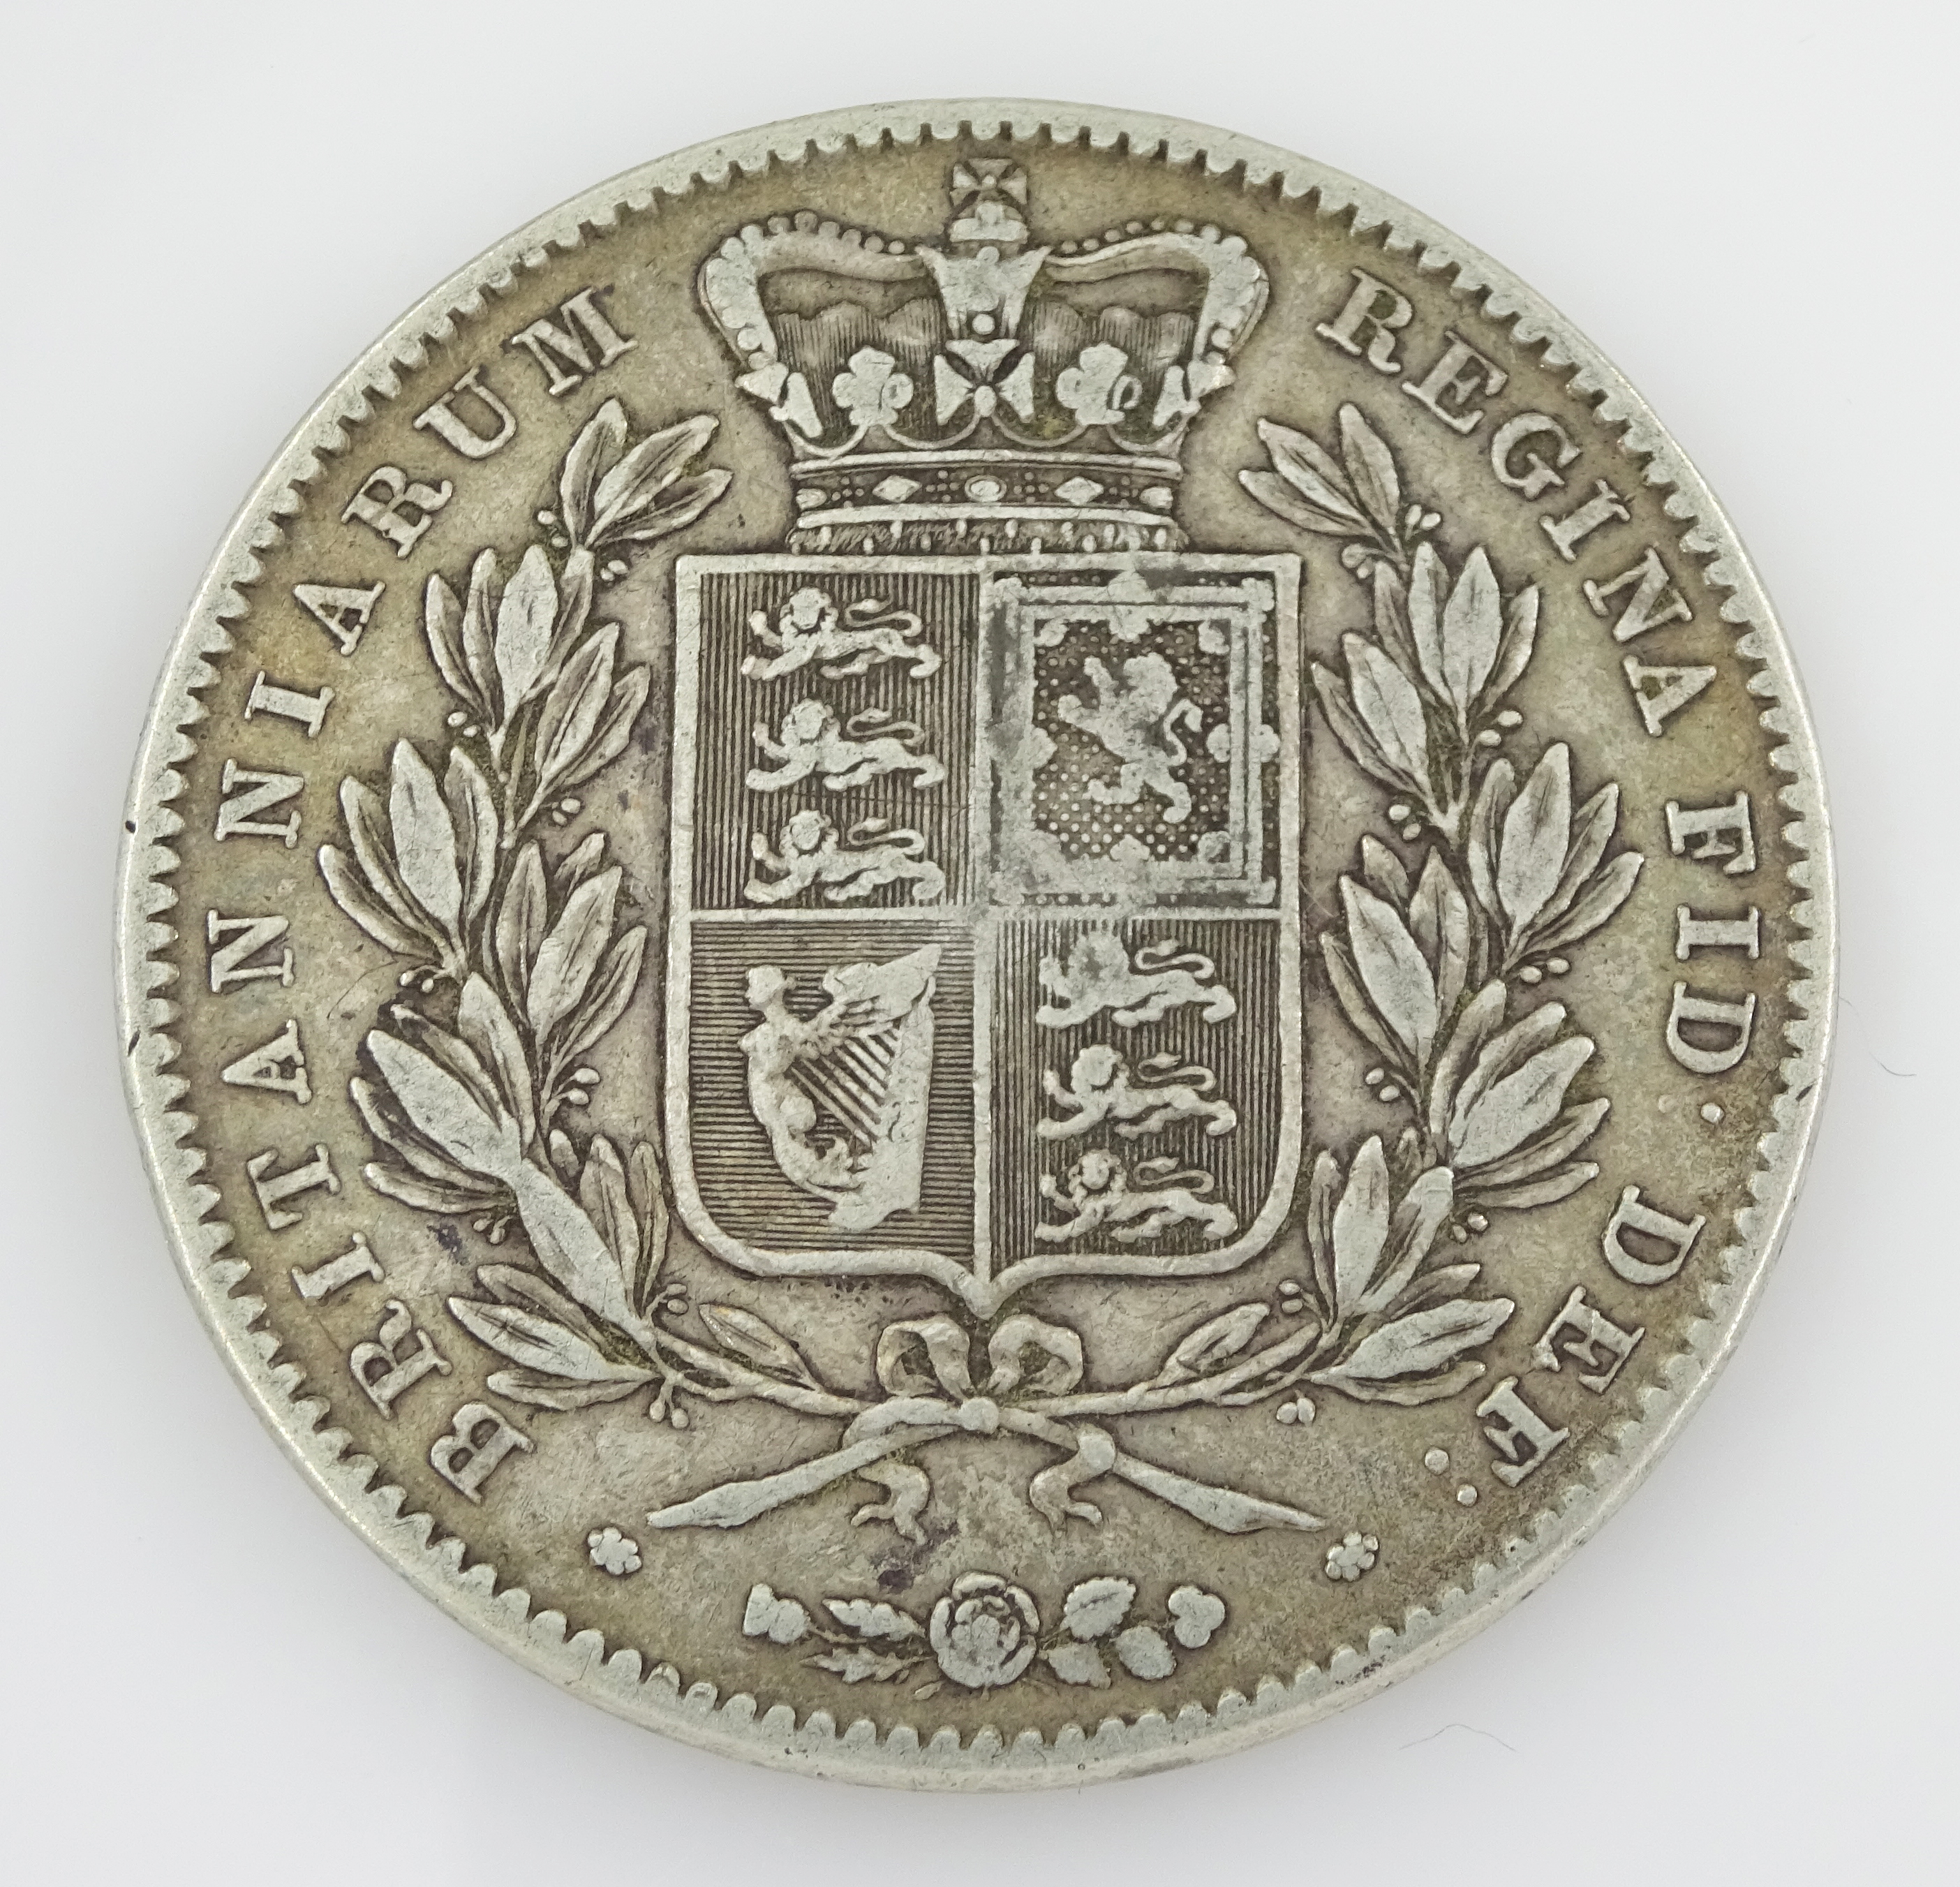 Queen Victoria 1847 crown coin - Image 2 of 2